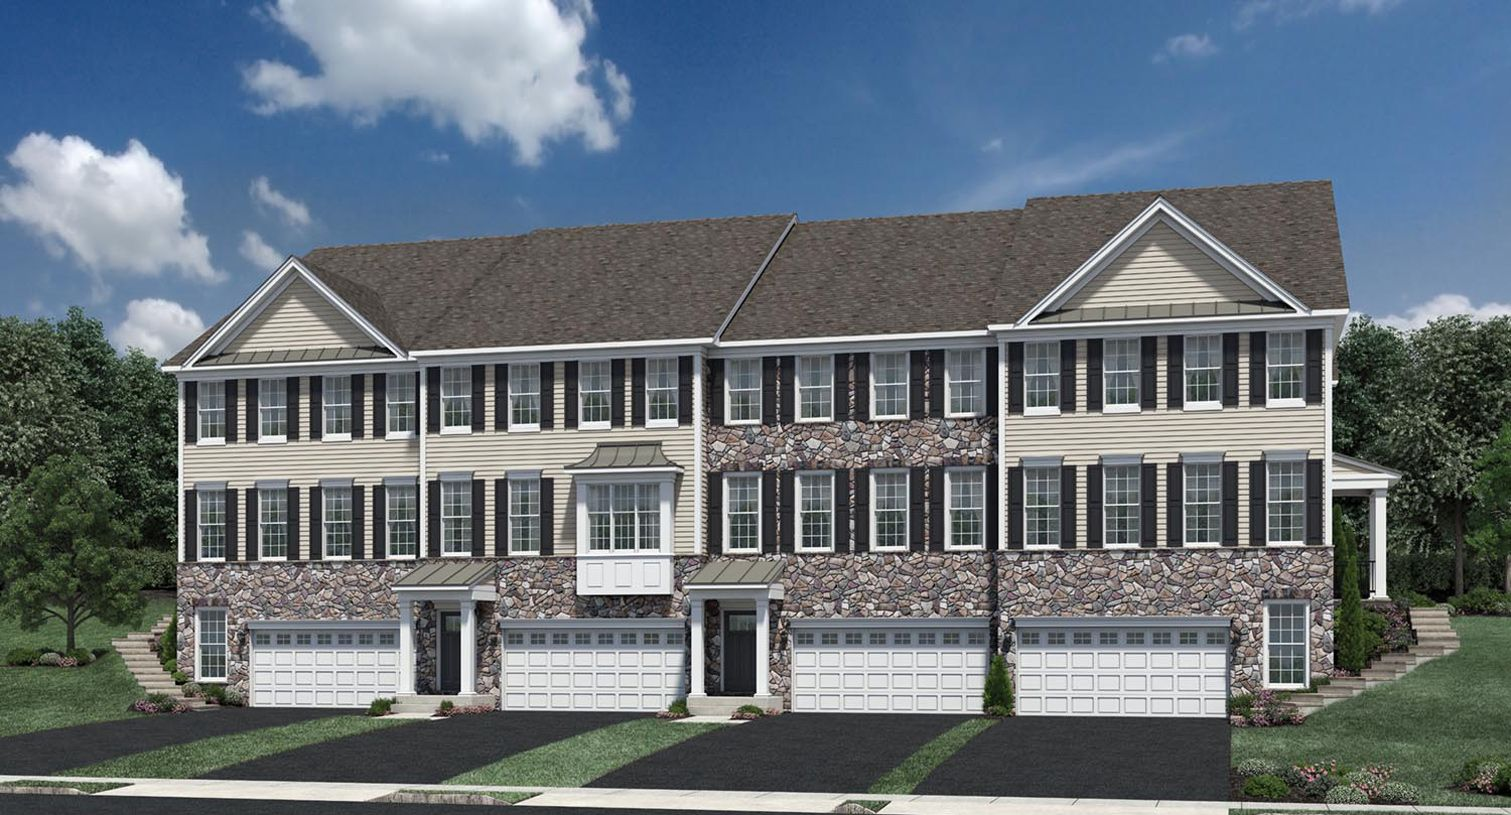 Multi Family for Sale at Enclave At Pleasantville - Jarvis 24 Dennis Lane Pleasantville, New York 10570 United States